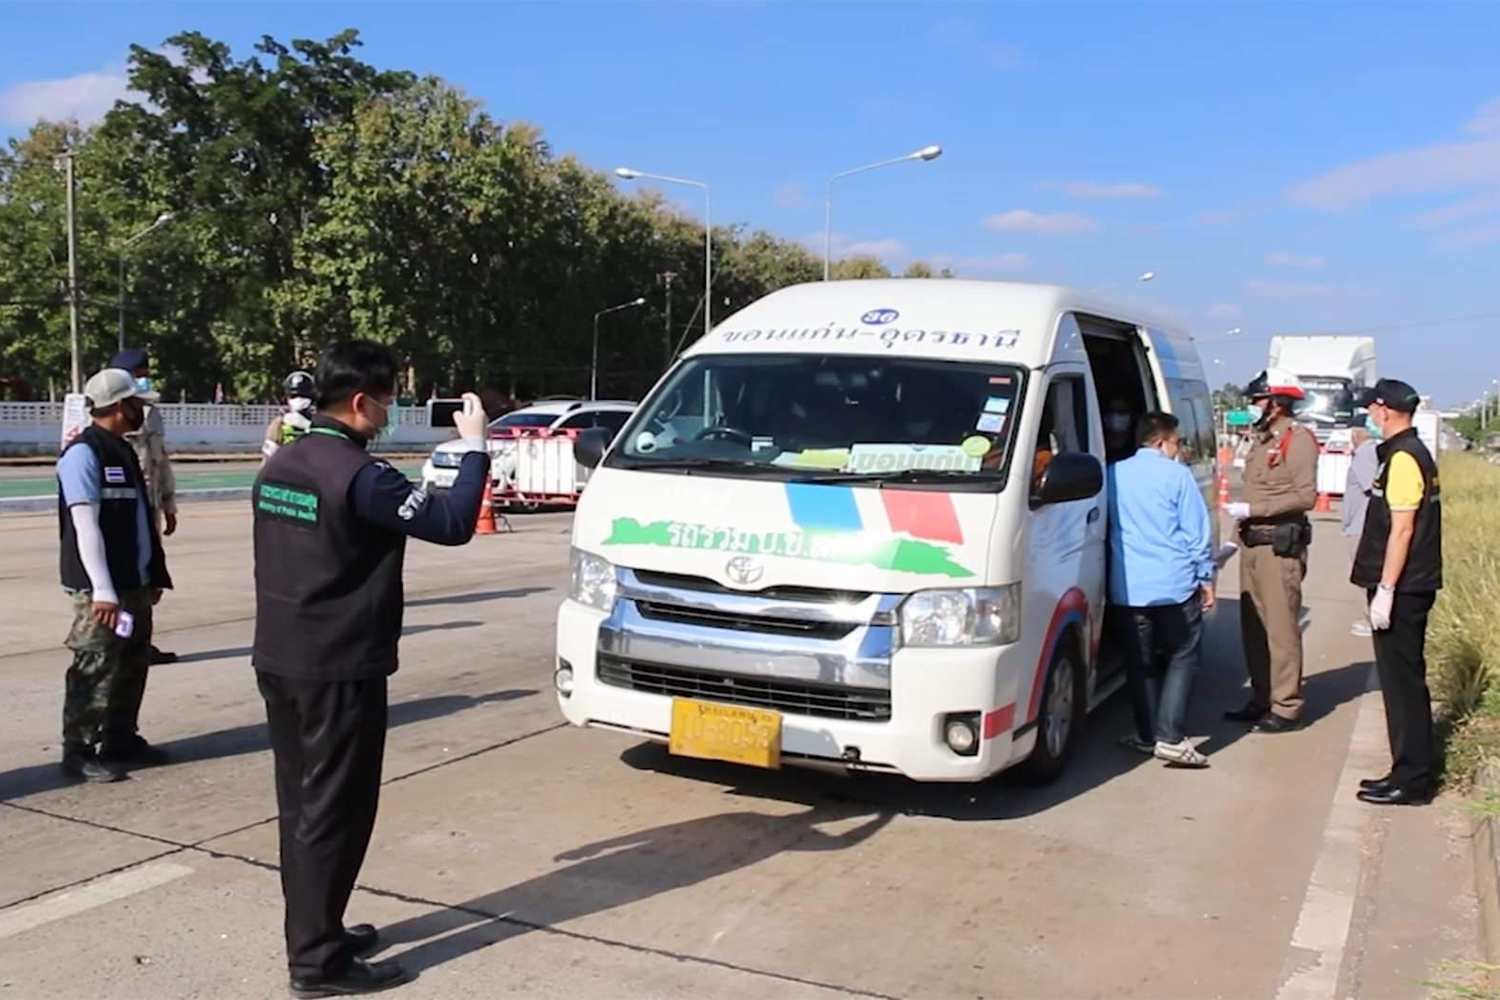 Officials check vehicles entering Khon Kaen on Sunday after more Covid-19 infections were detected in Samut Sakhon. (Photo by Chakkrapan Natanri)